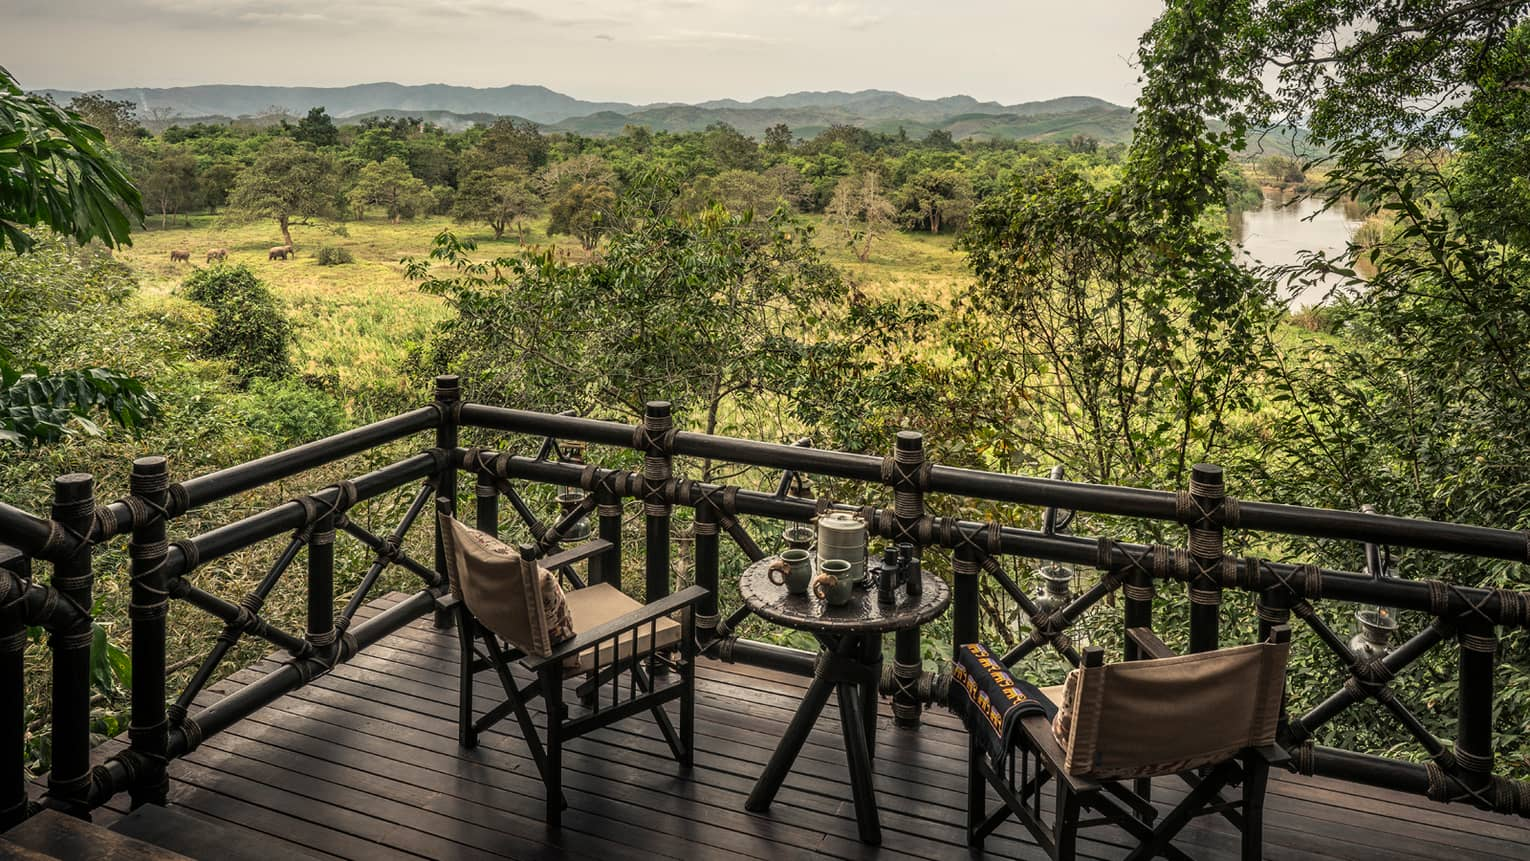 Wood chairs on balcony, looking out at green field with roaming elephants